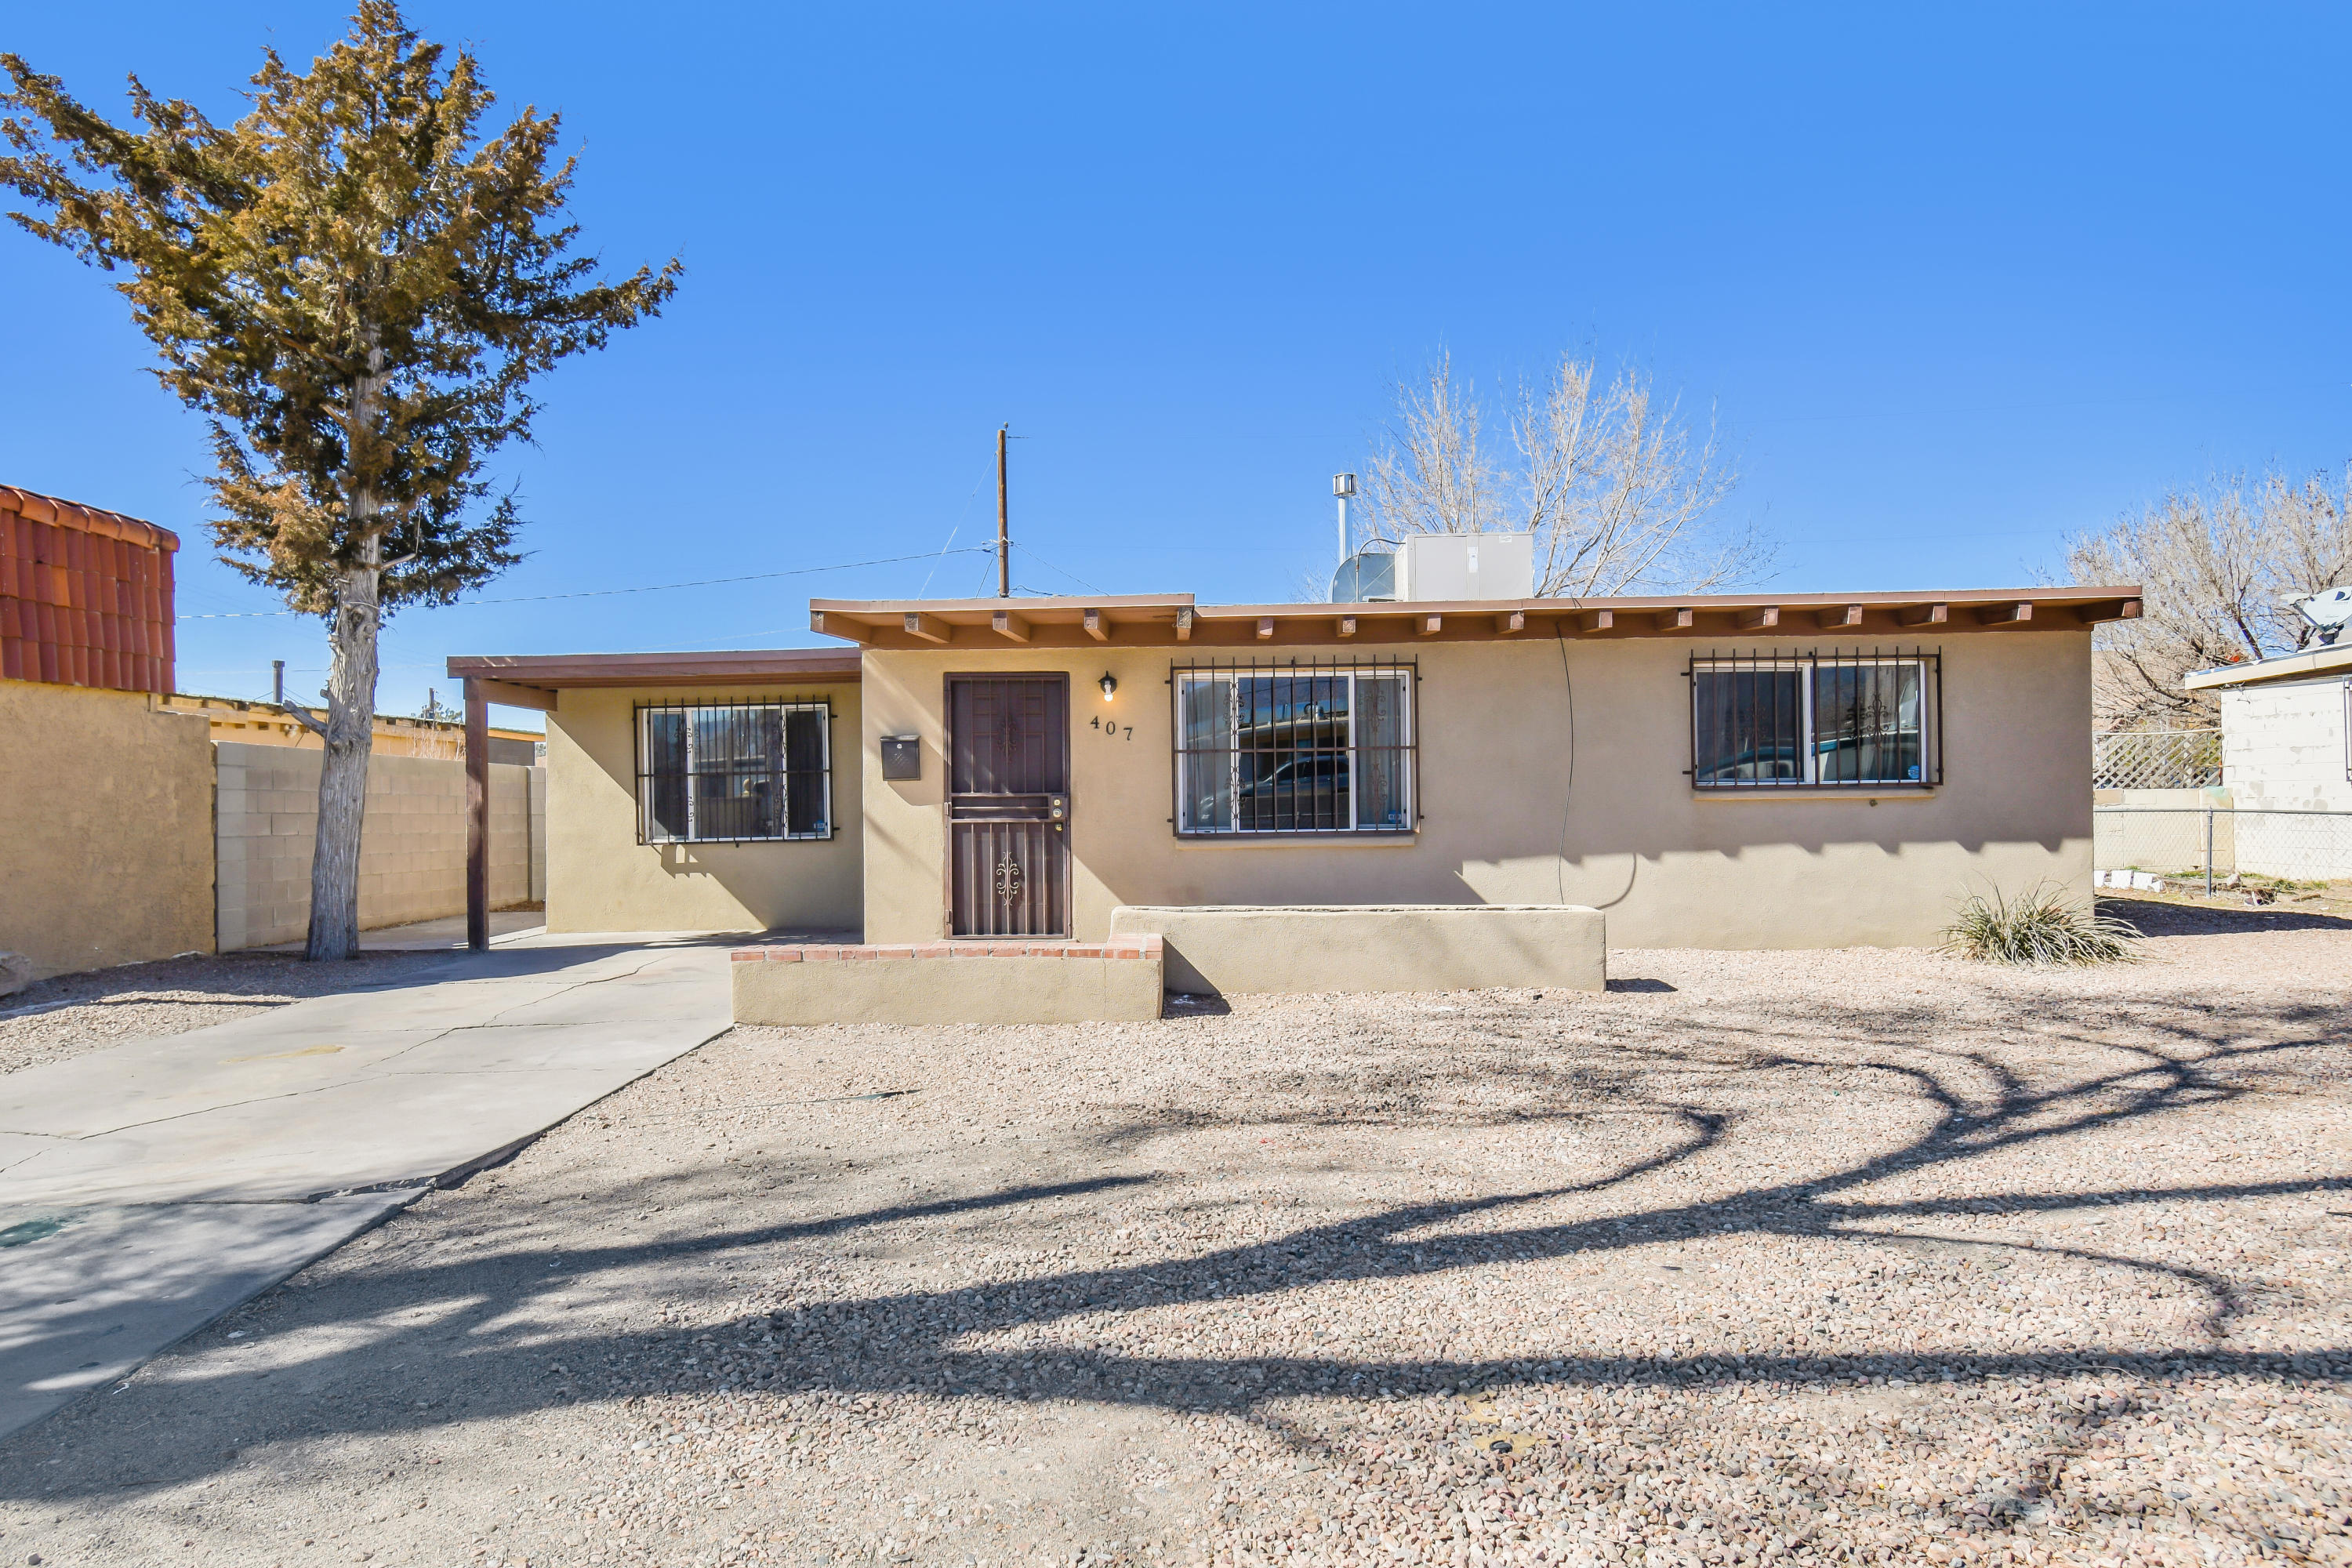 This 3 bedroom home features wood beamed ceilings and newer tile and vinyl flooring throughout. New master cool unit and security wrought iron has been added to windows.Huge backyard w/ two storage sheds. Furnace recently serviced.This rare opportunity won't last long!